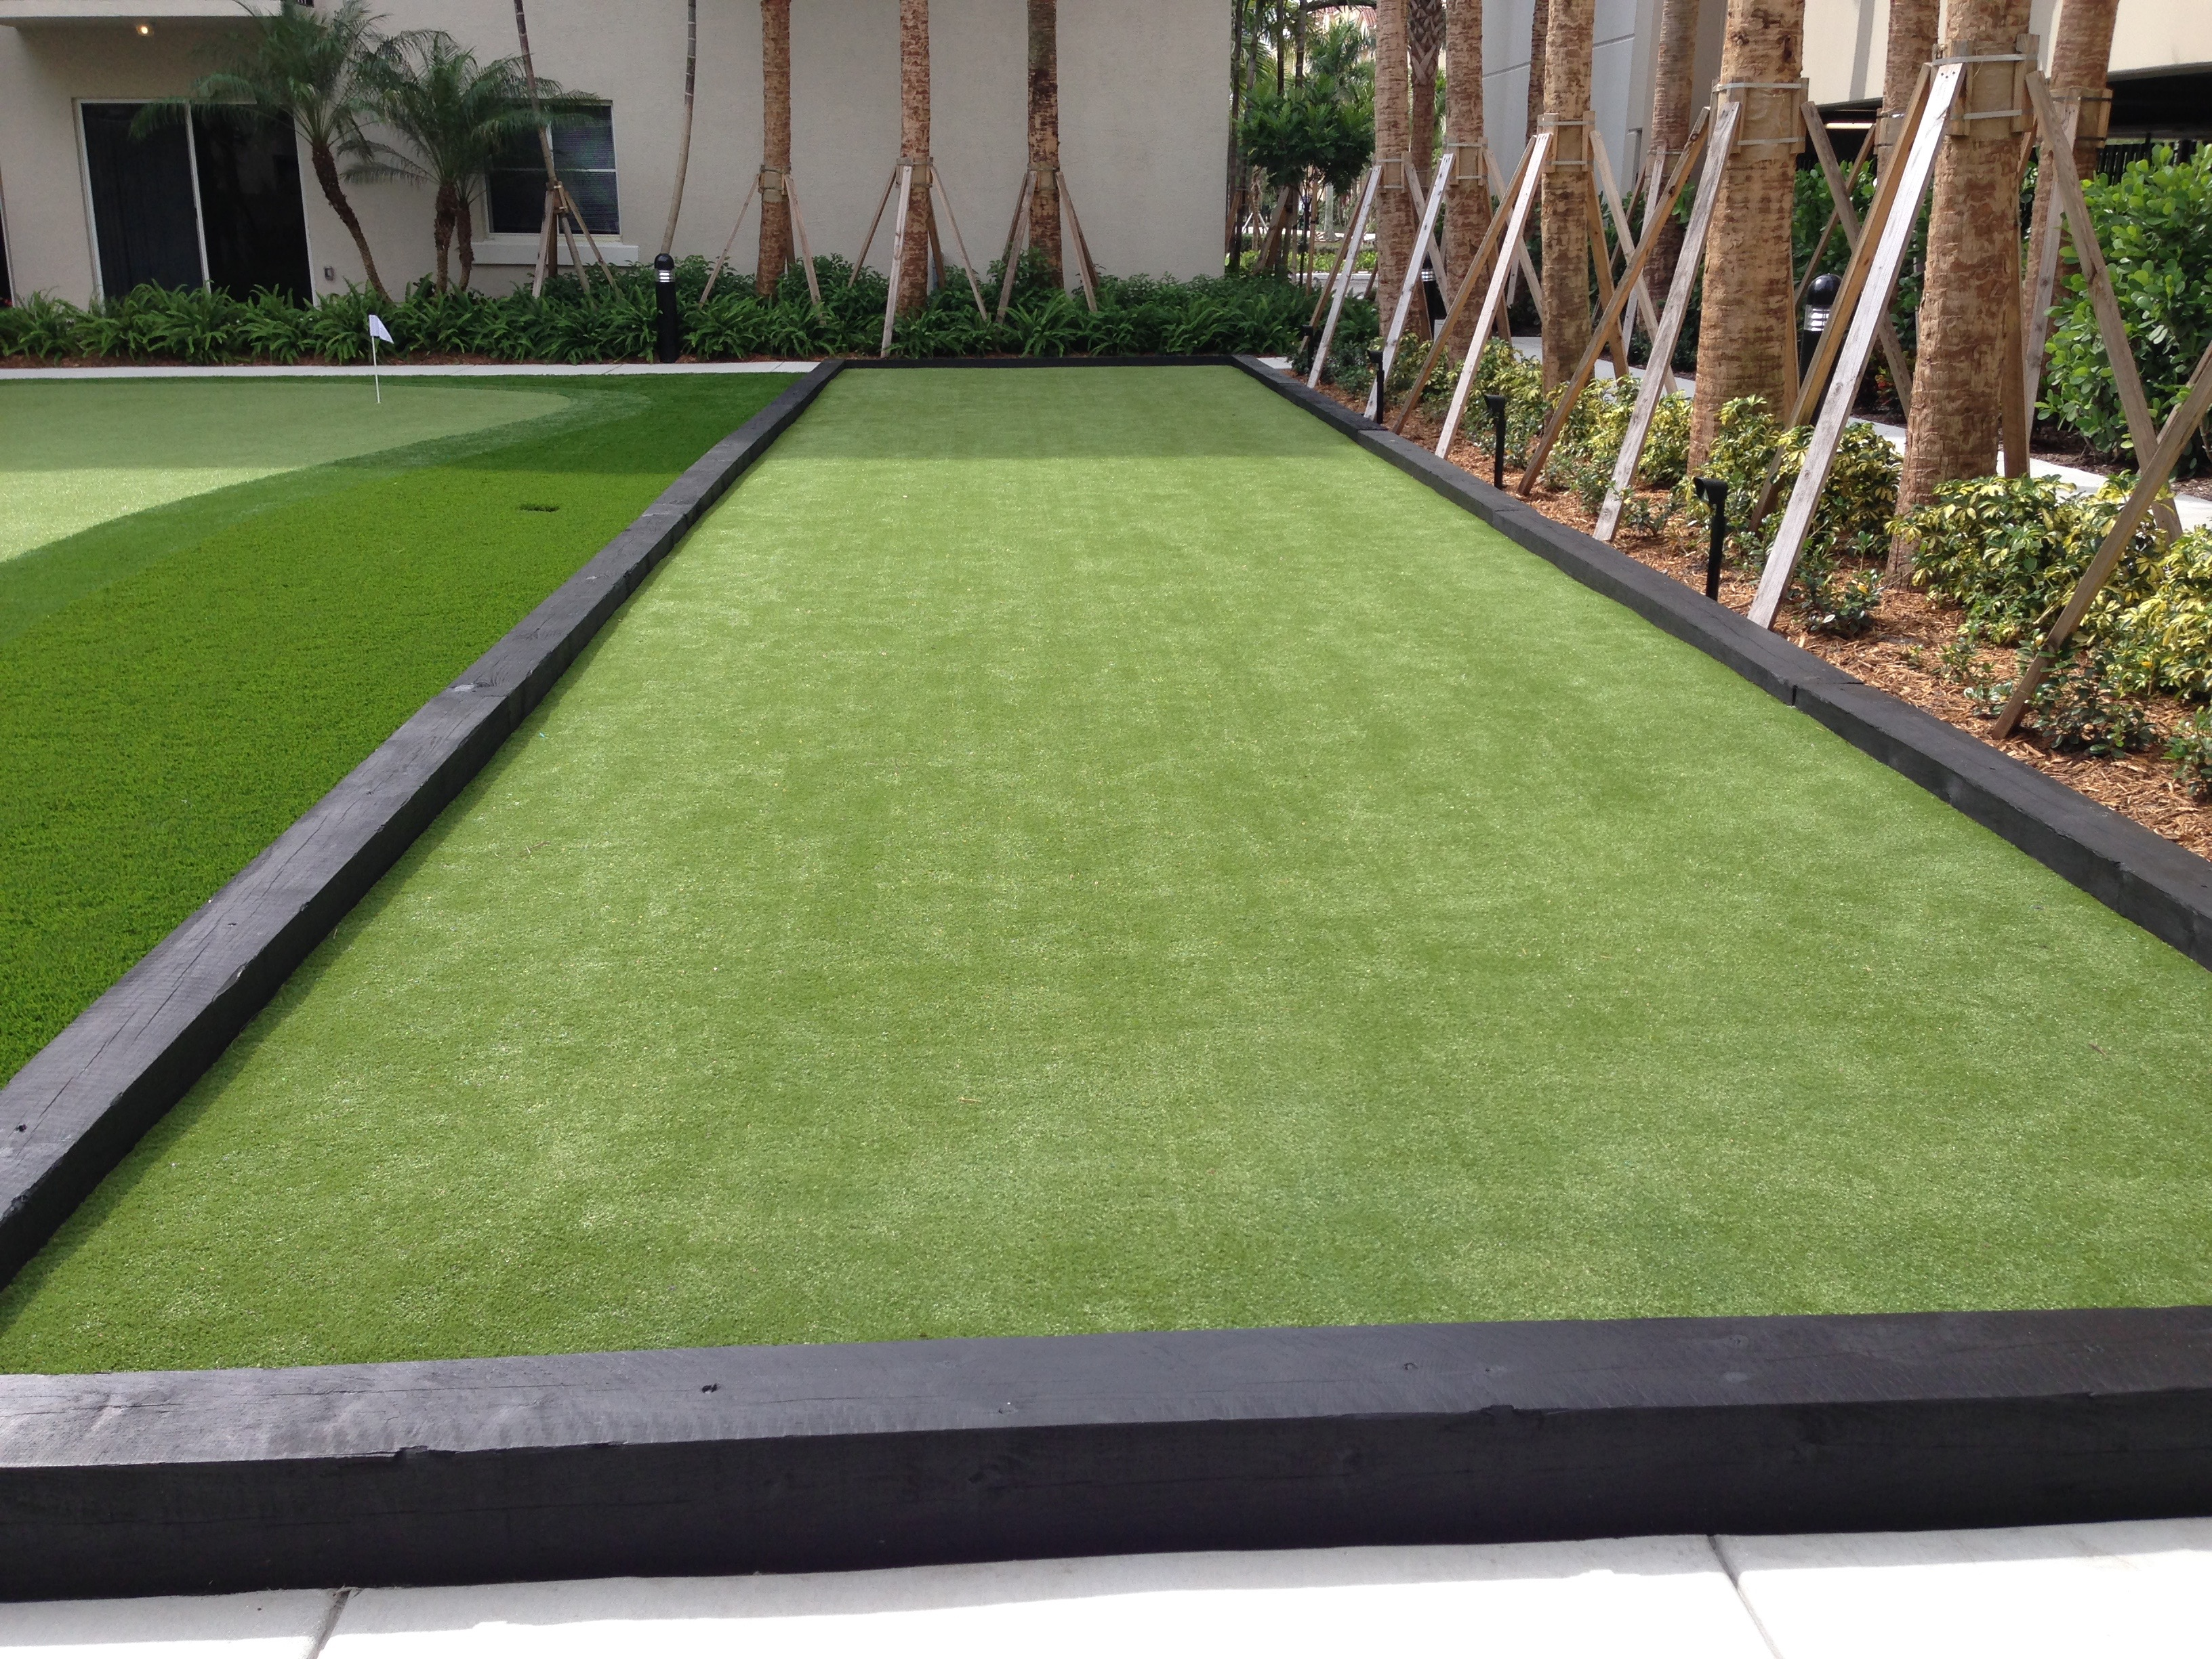 where can i get the best artificial grass in miami for my bocce ball court